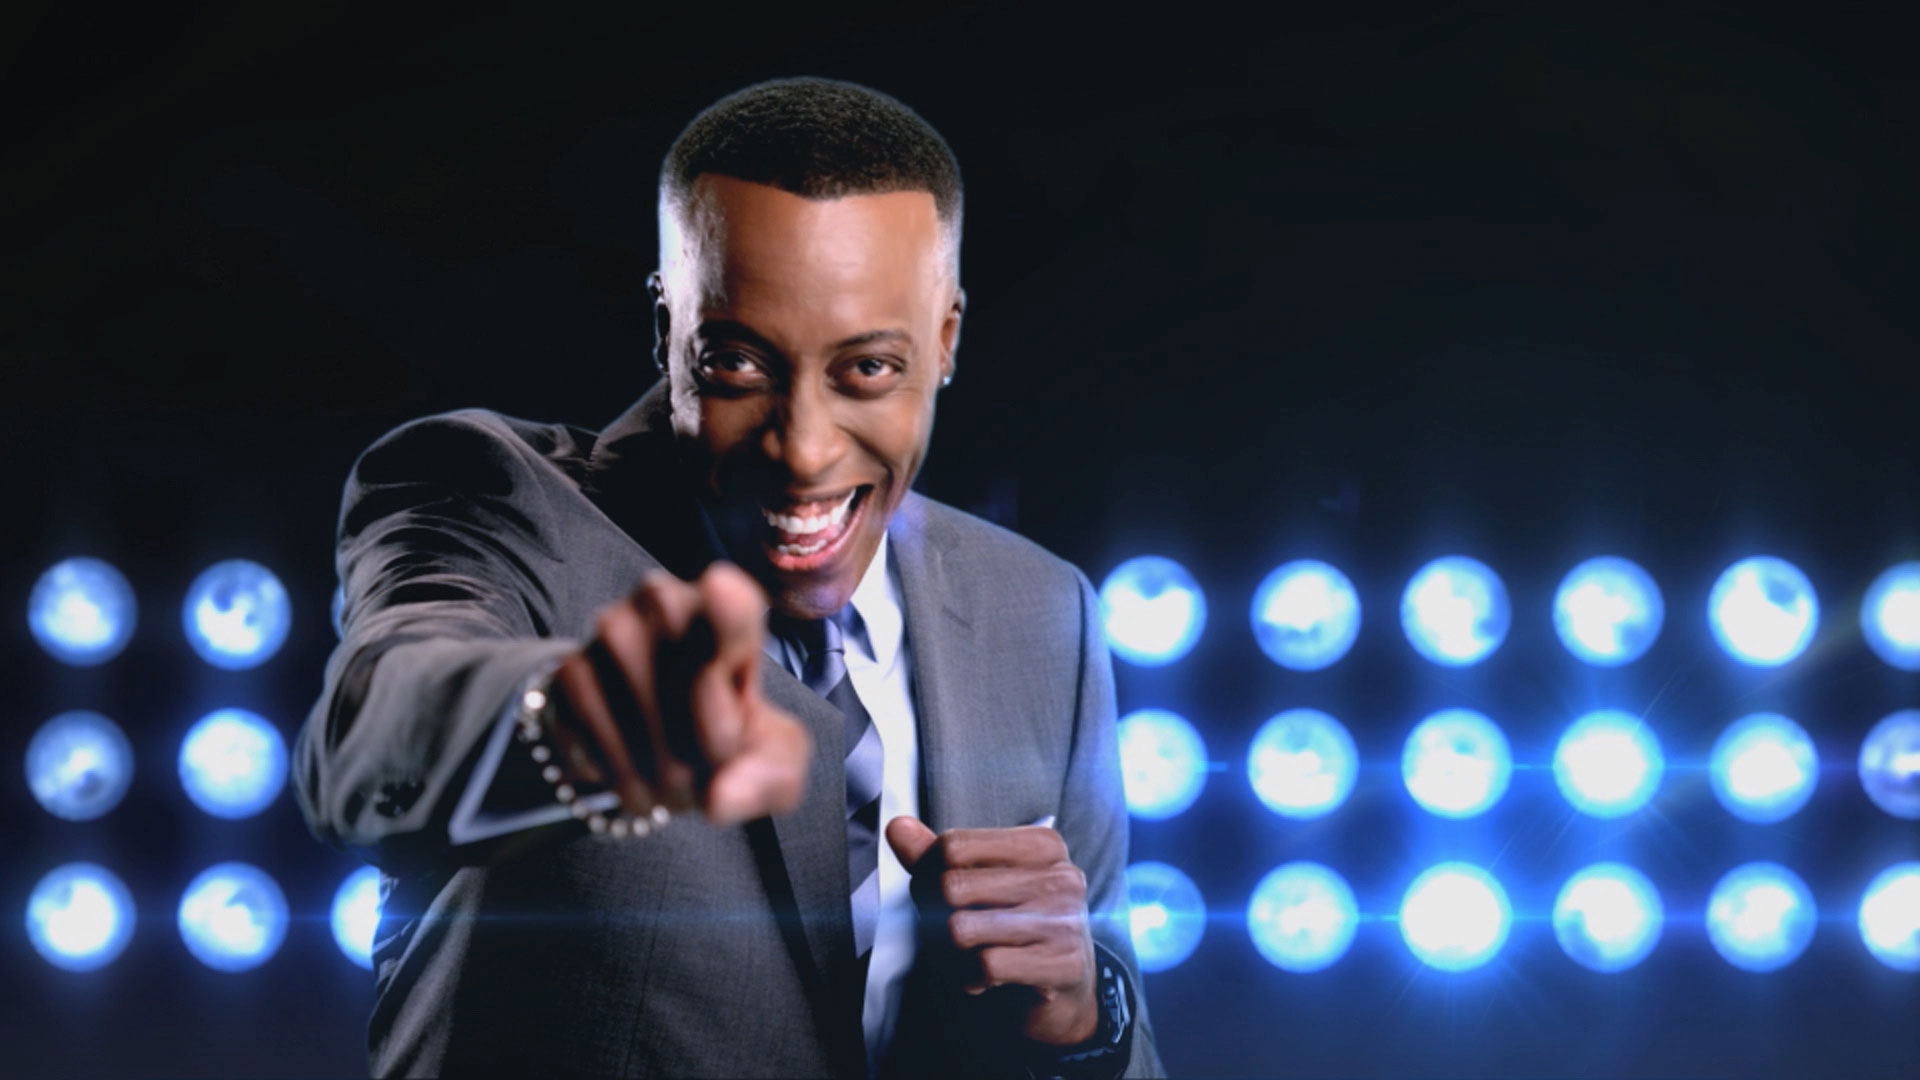 Arsenio Hall Makes His Way Back To Late Night TV